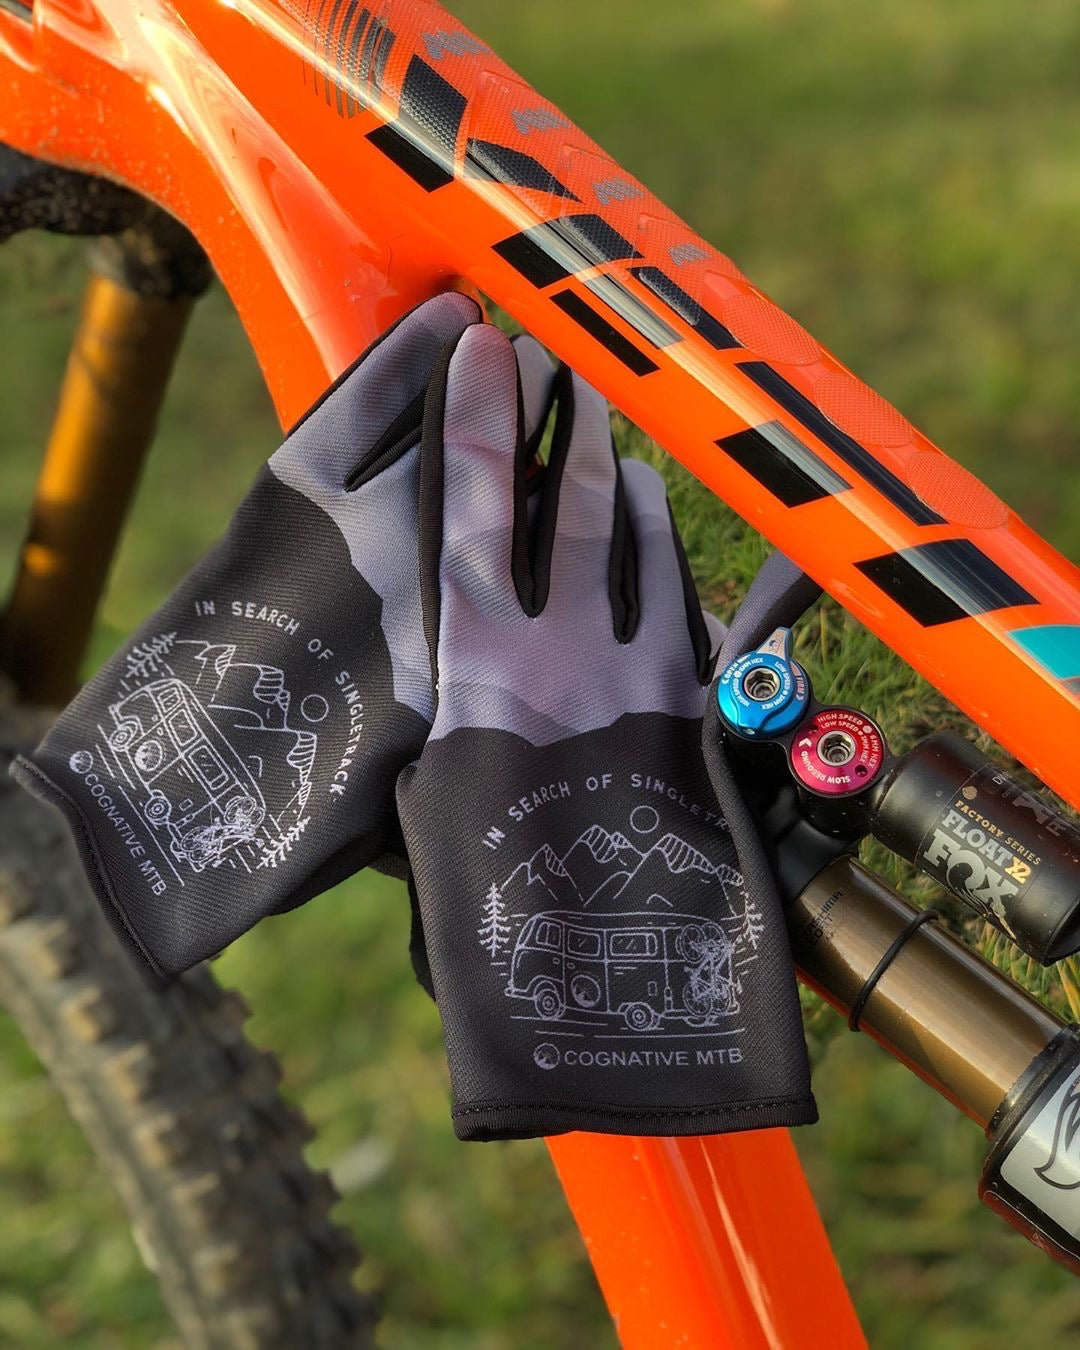 Cognatve MTB Tech gloves yeti bike